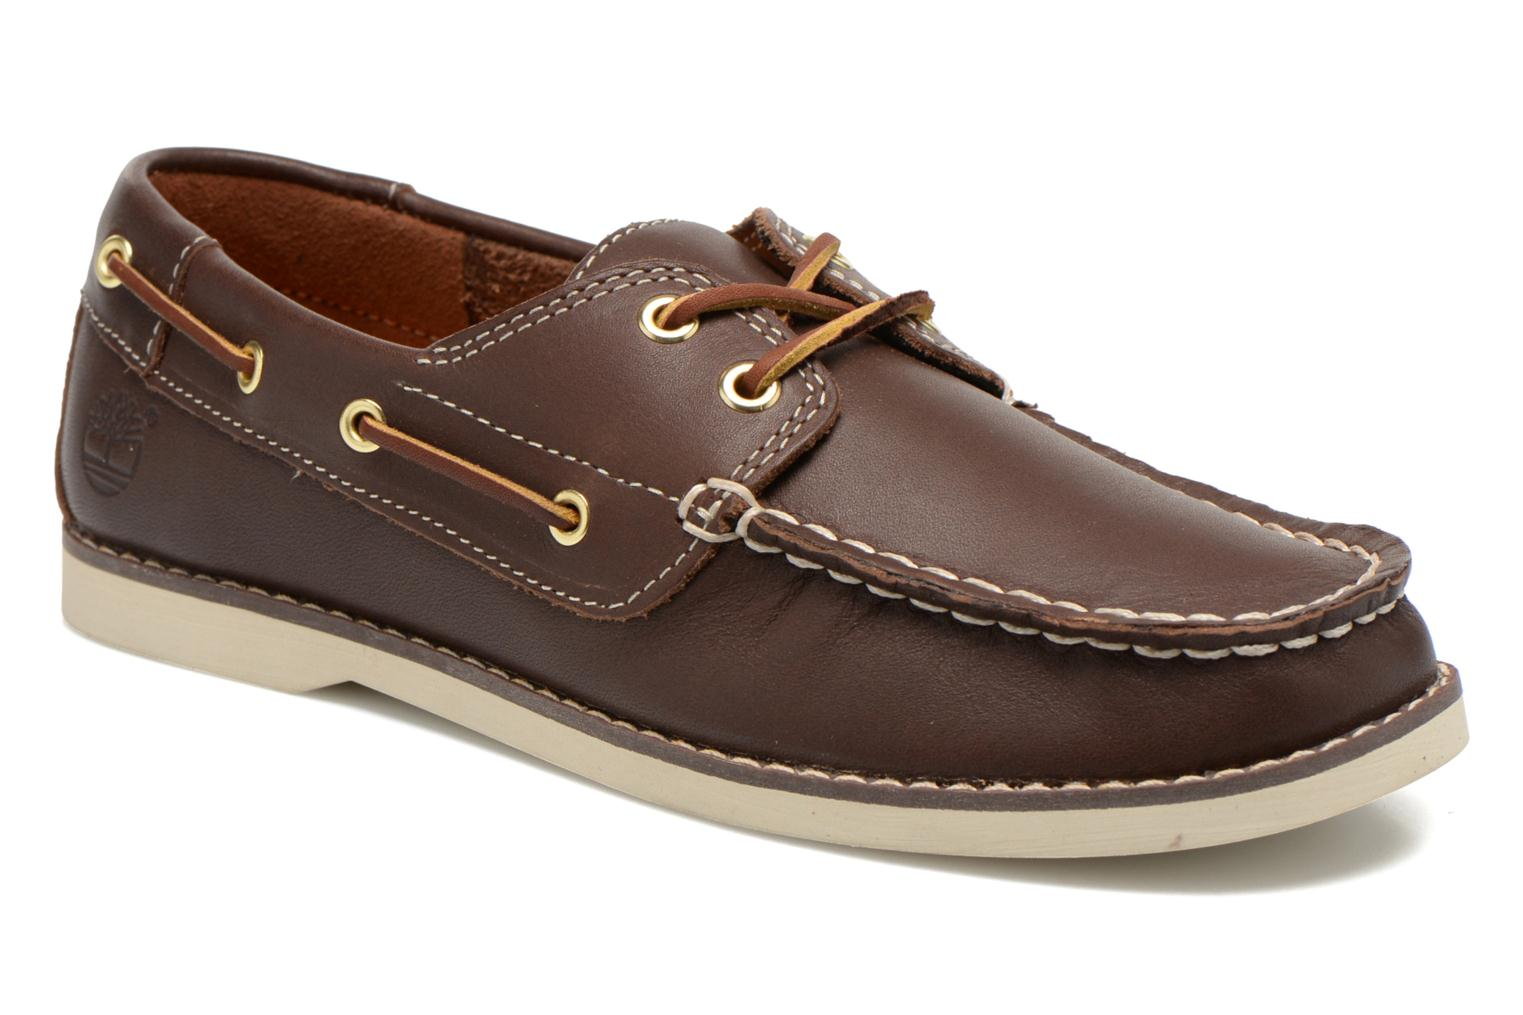 Seabury Classic 2Eye Boat Brown Smooth